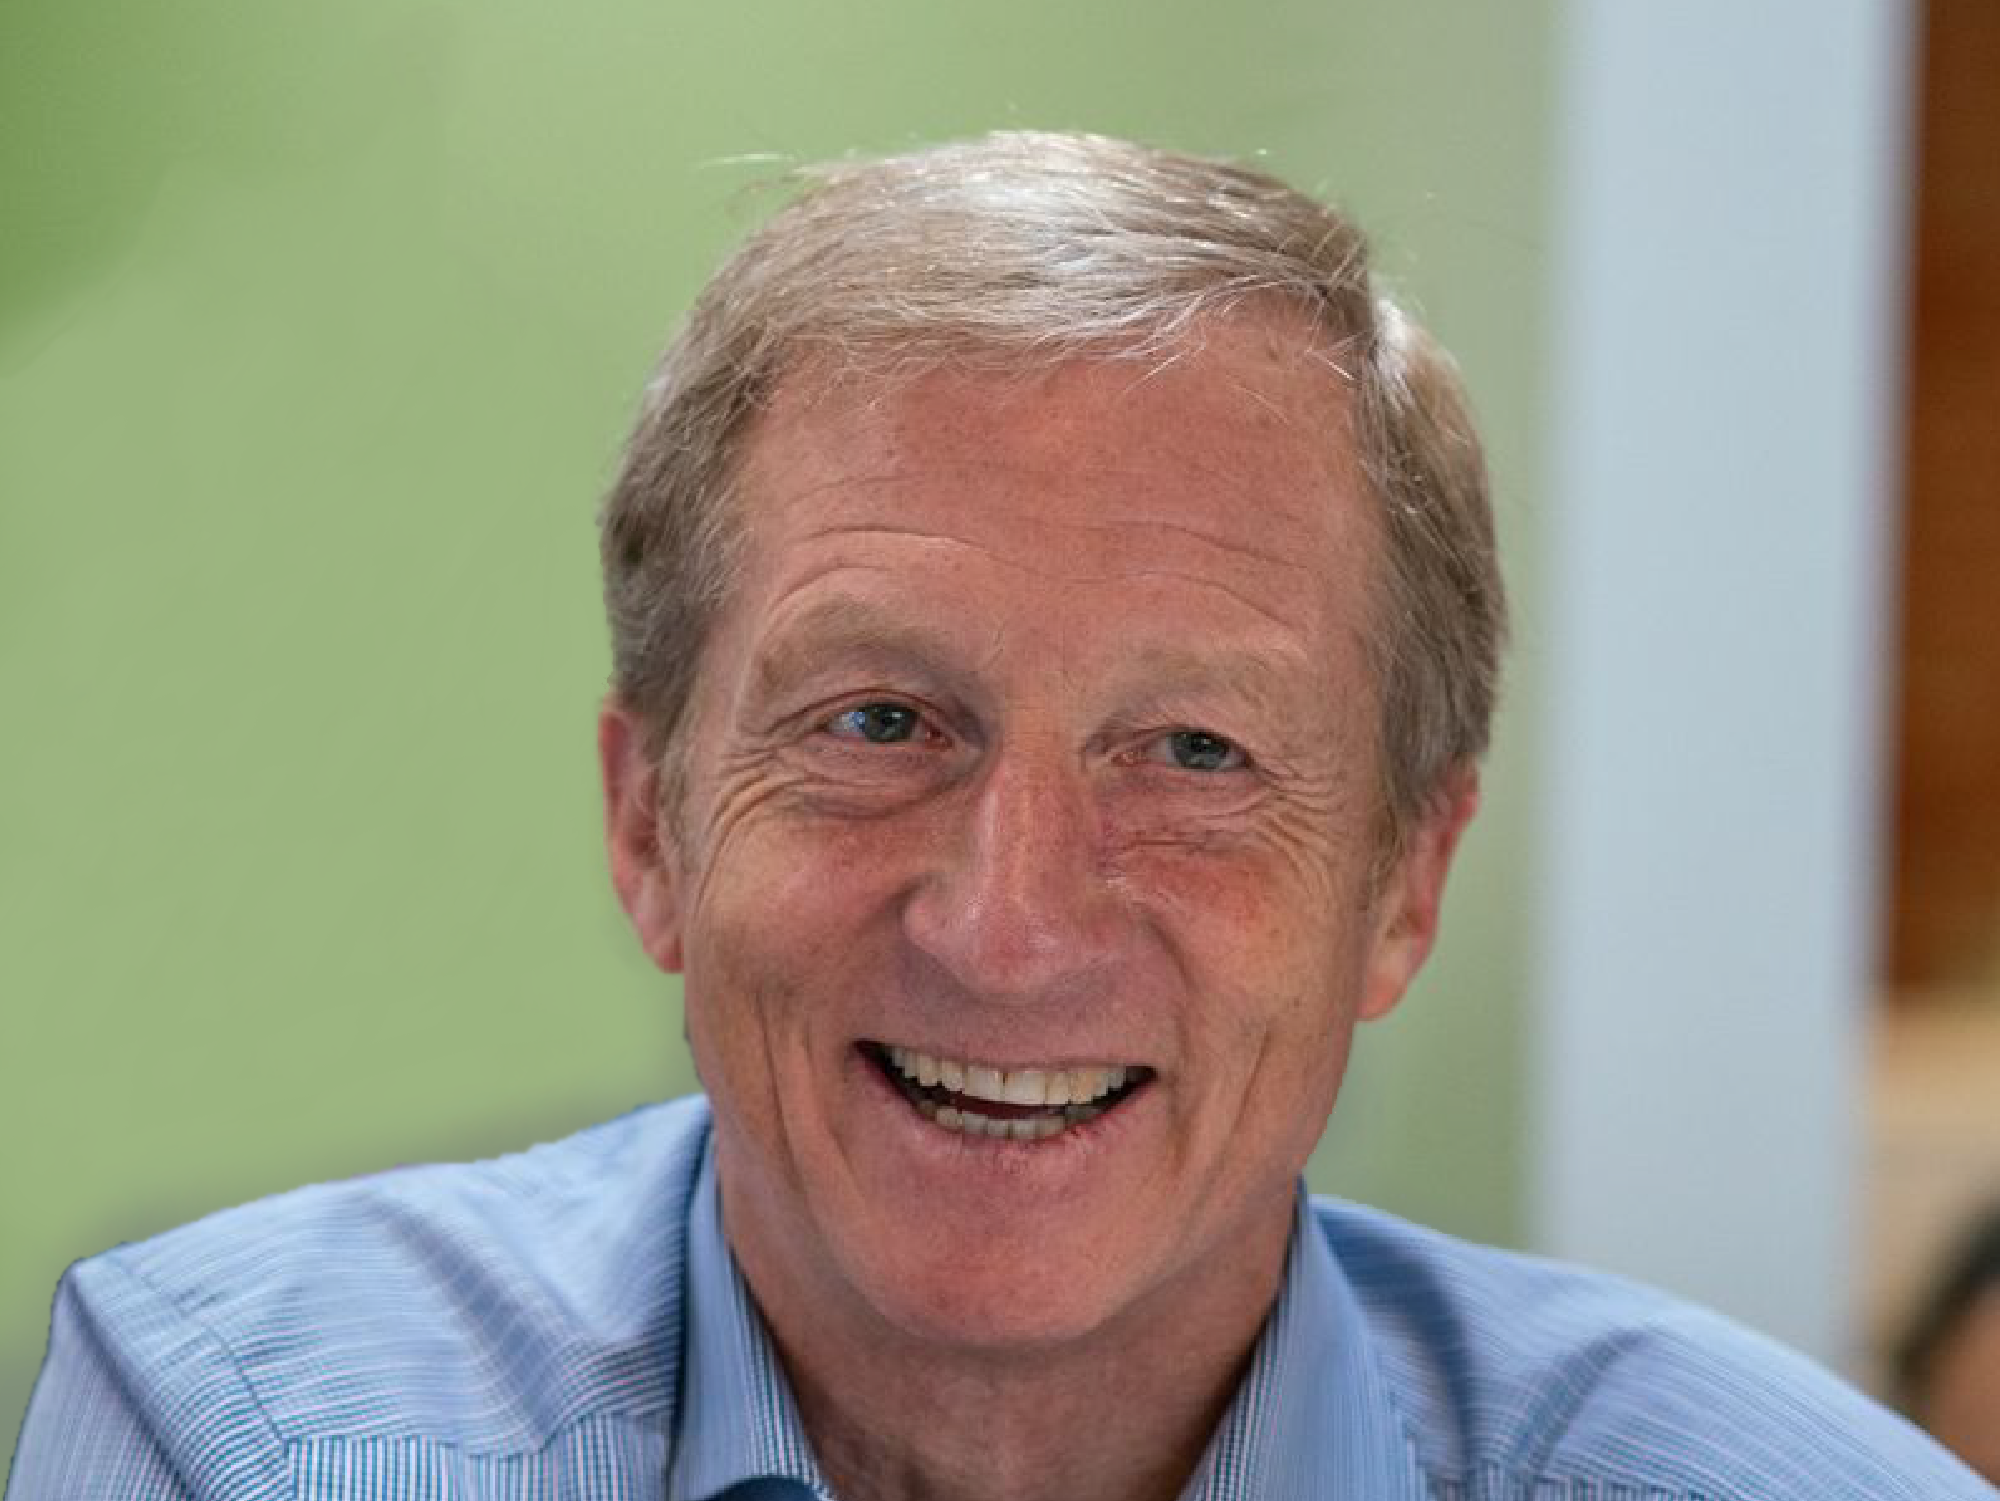 2020 Presidential Candidate Tom Steyer